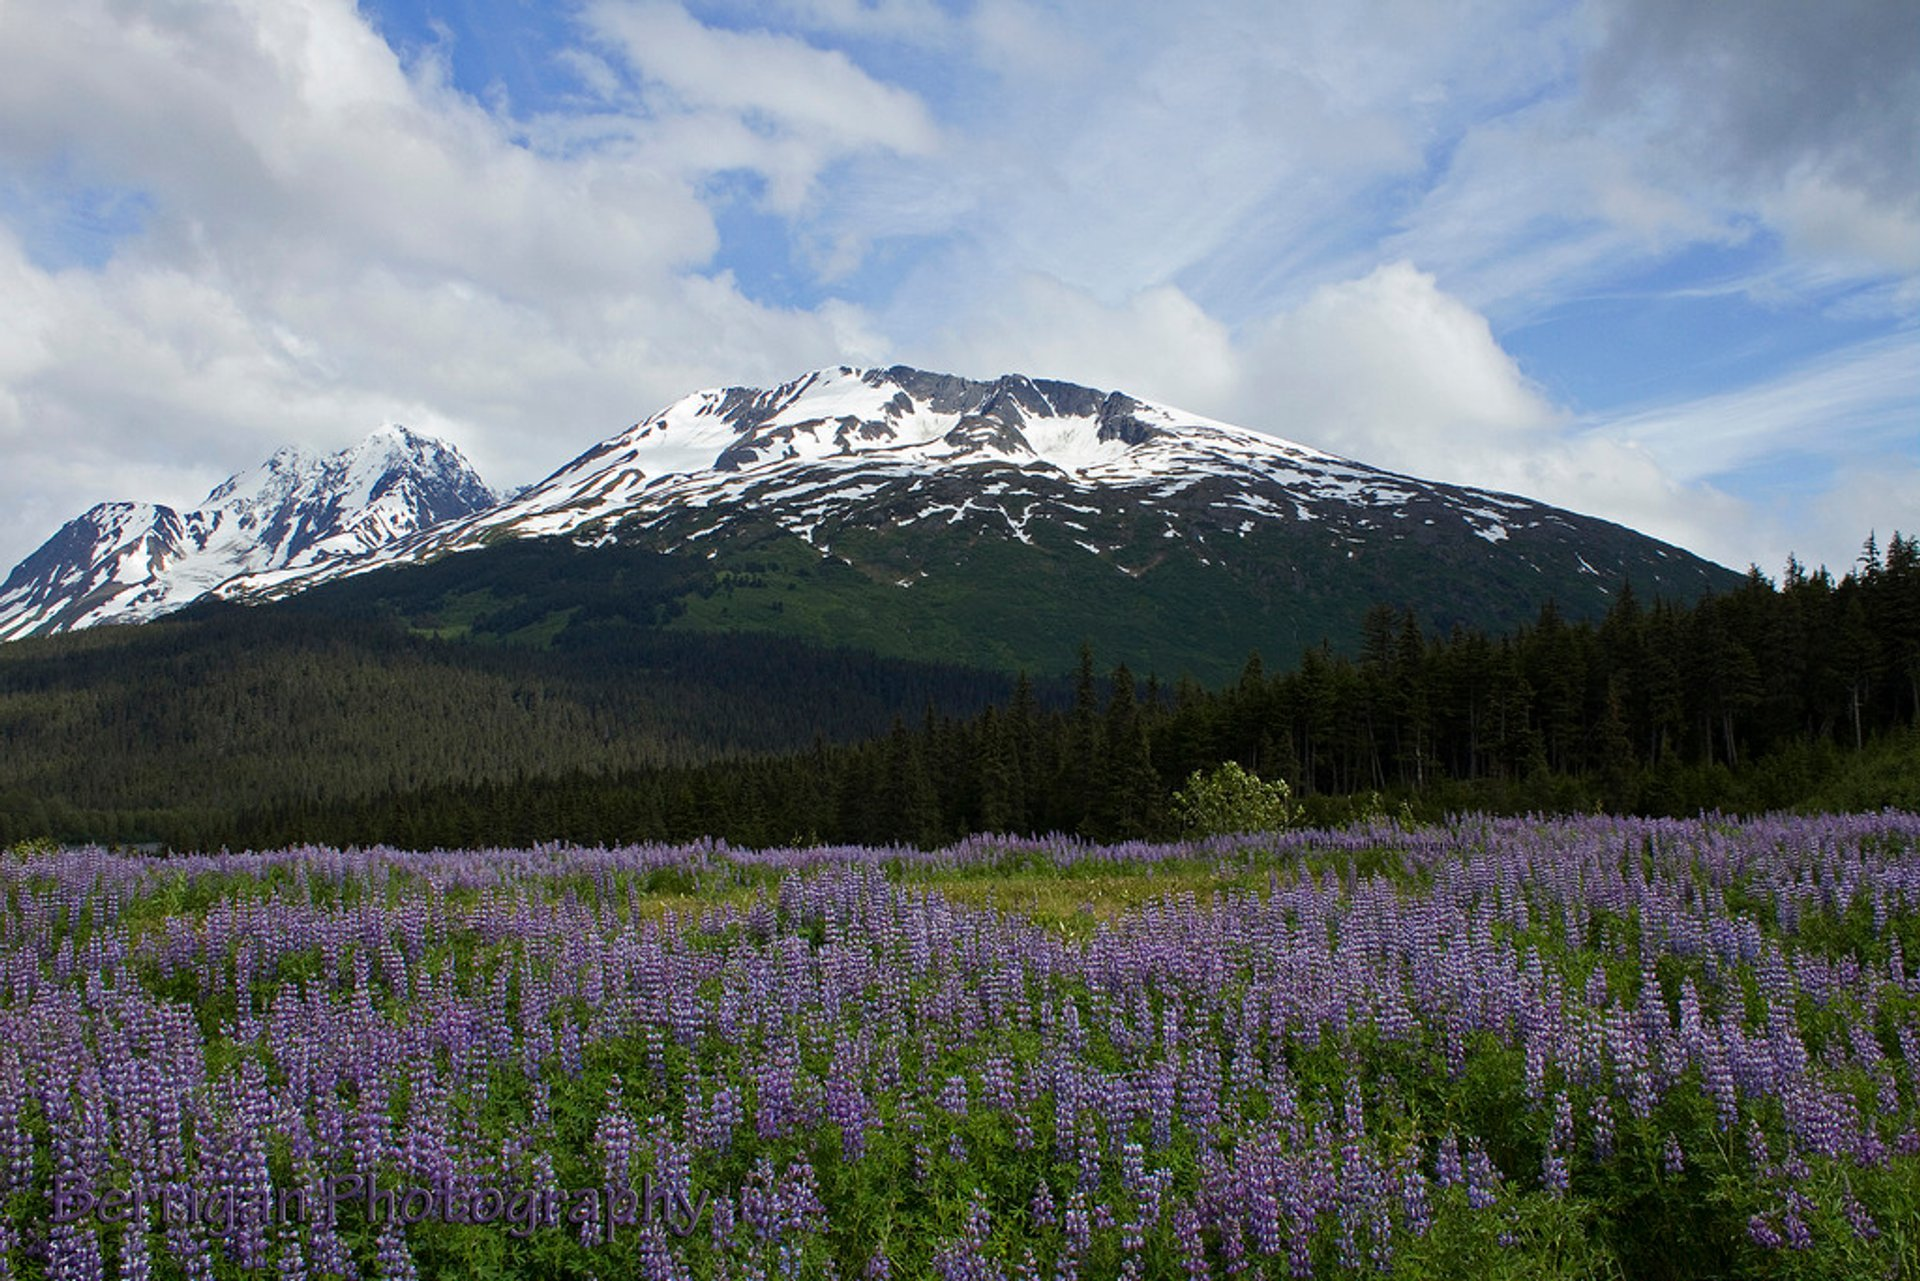 Lupine and mountain near Seward 2020